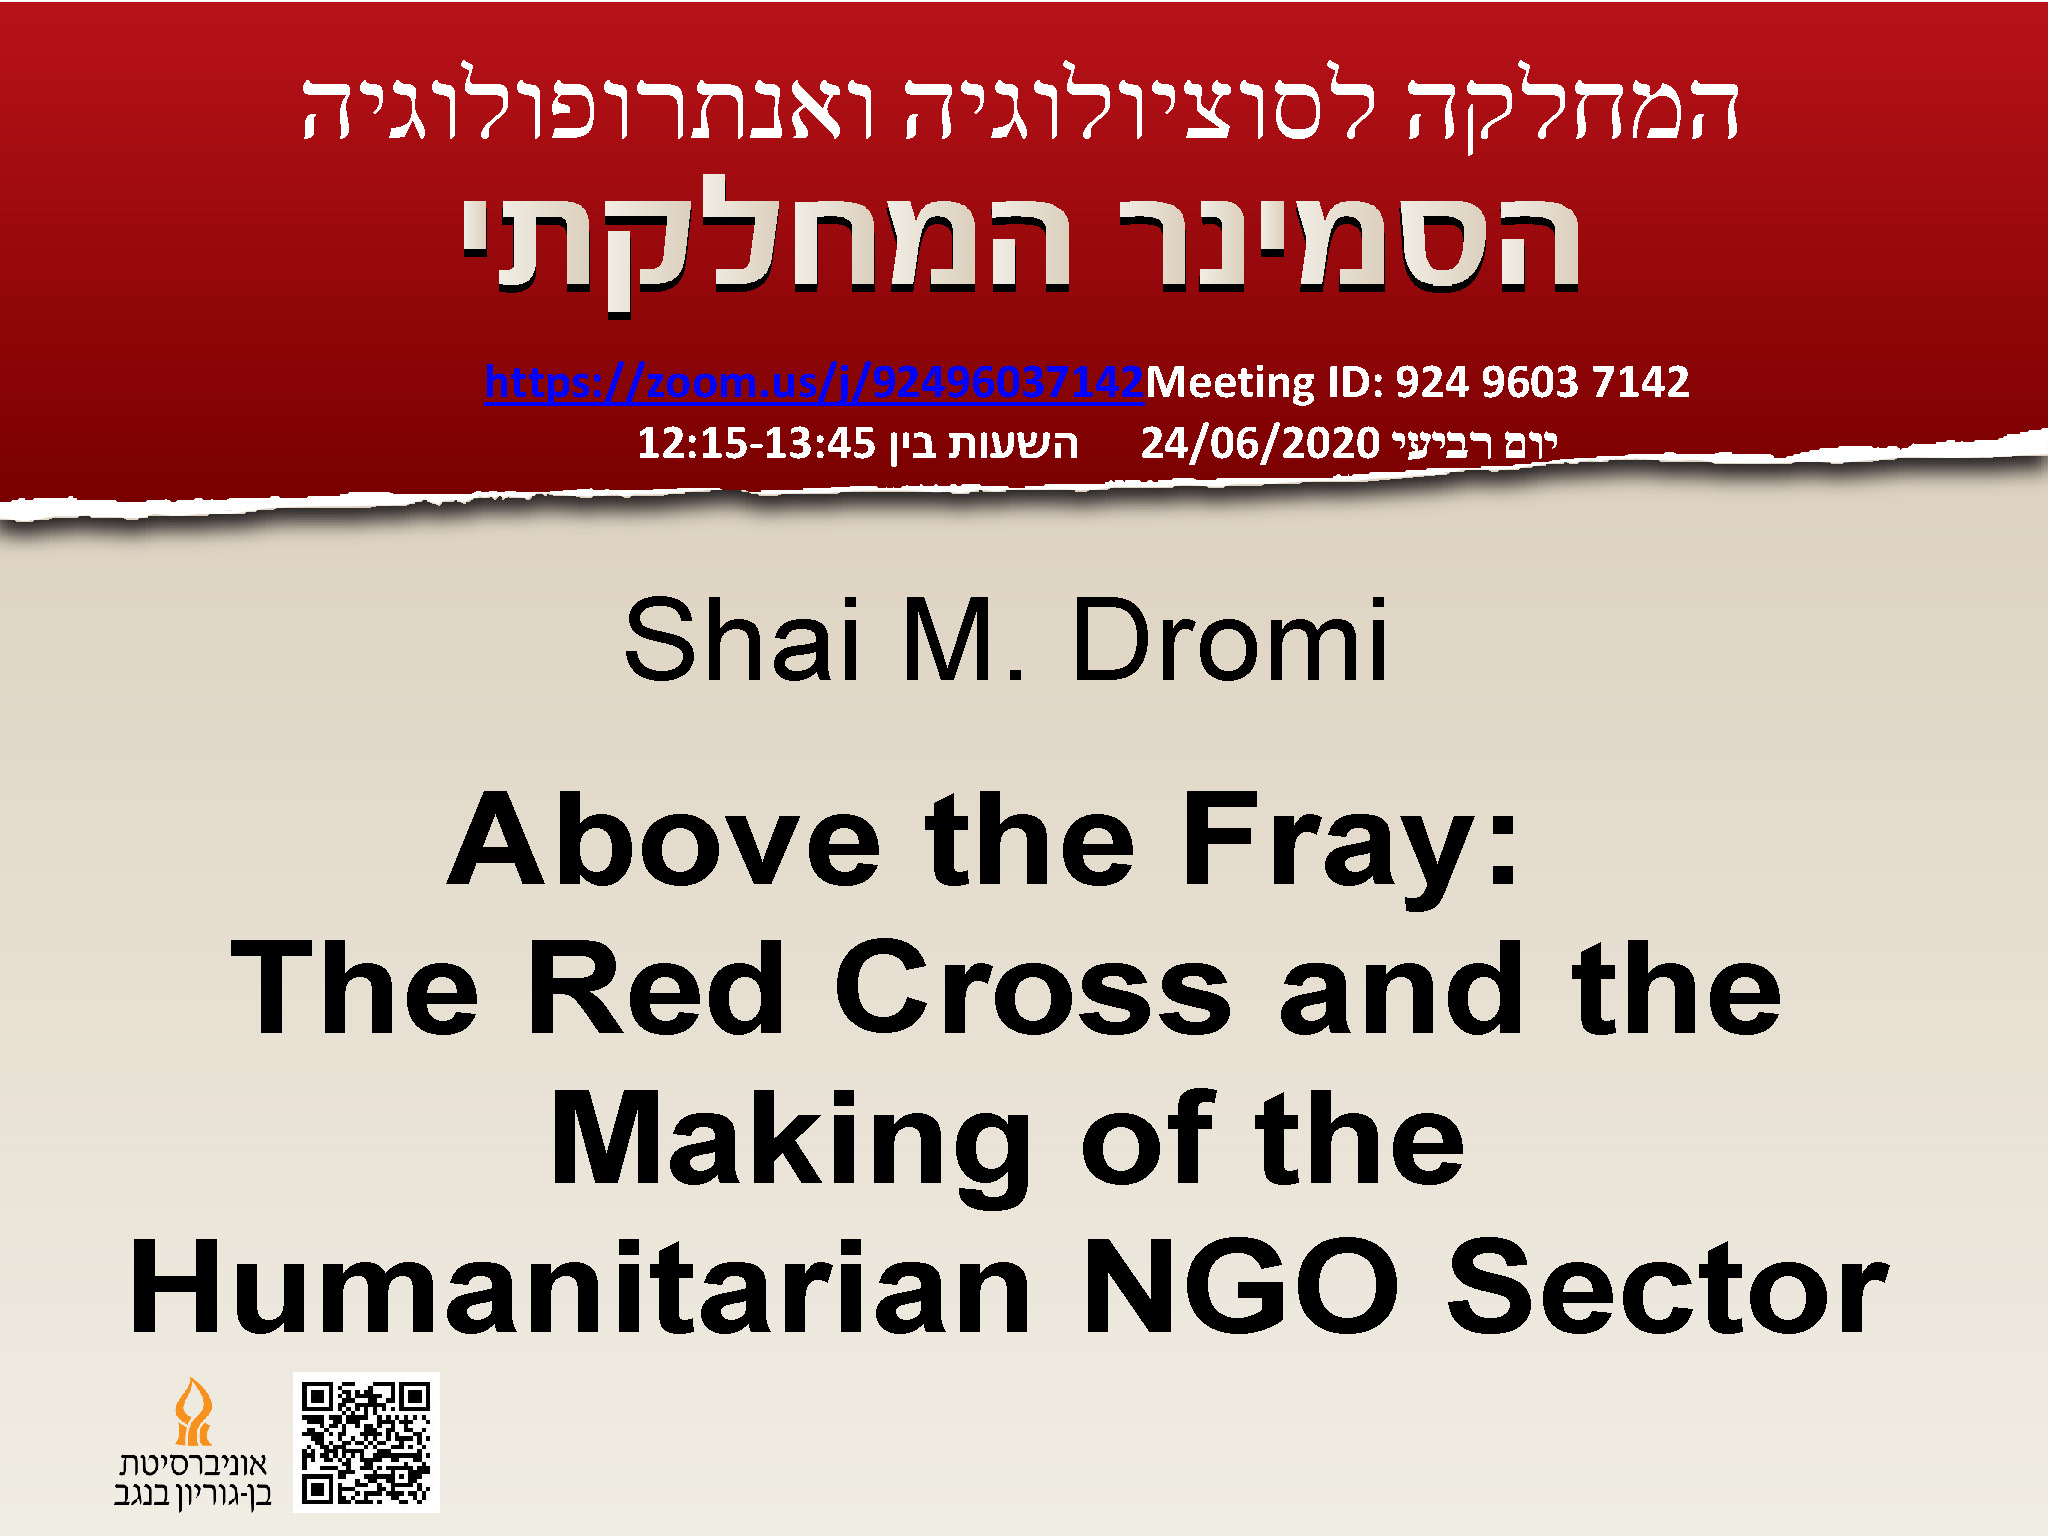 Shai M. Dromi - Above the Fray: The Red Cross and the Making of the Humanitarian NGO Sector